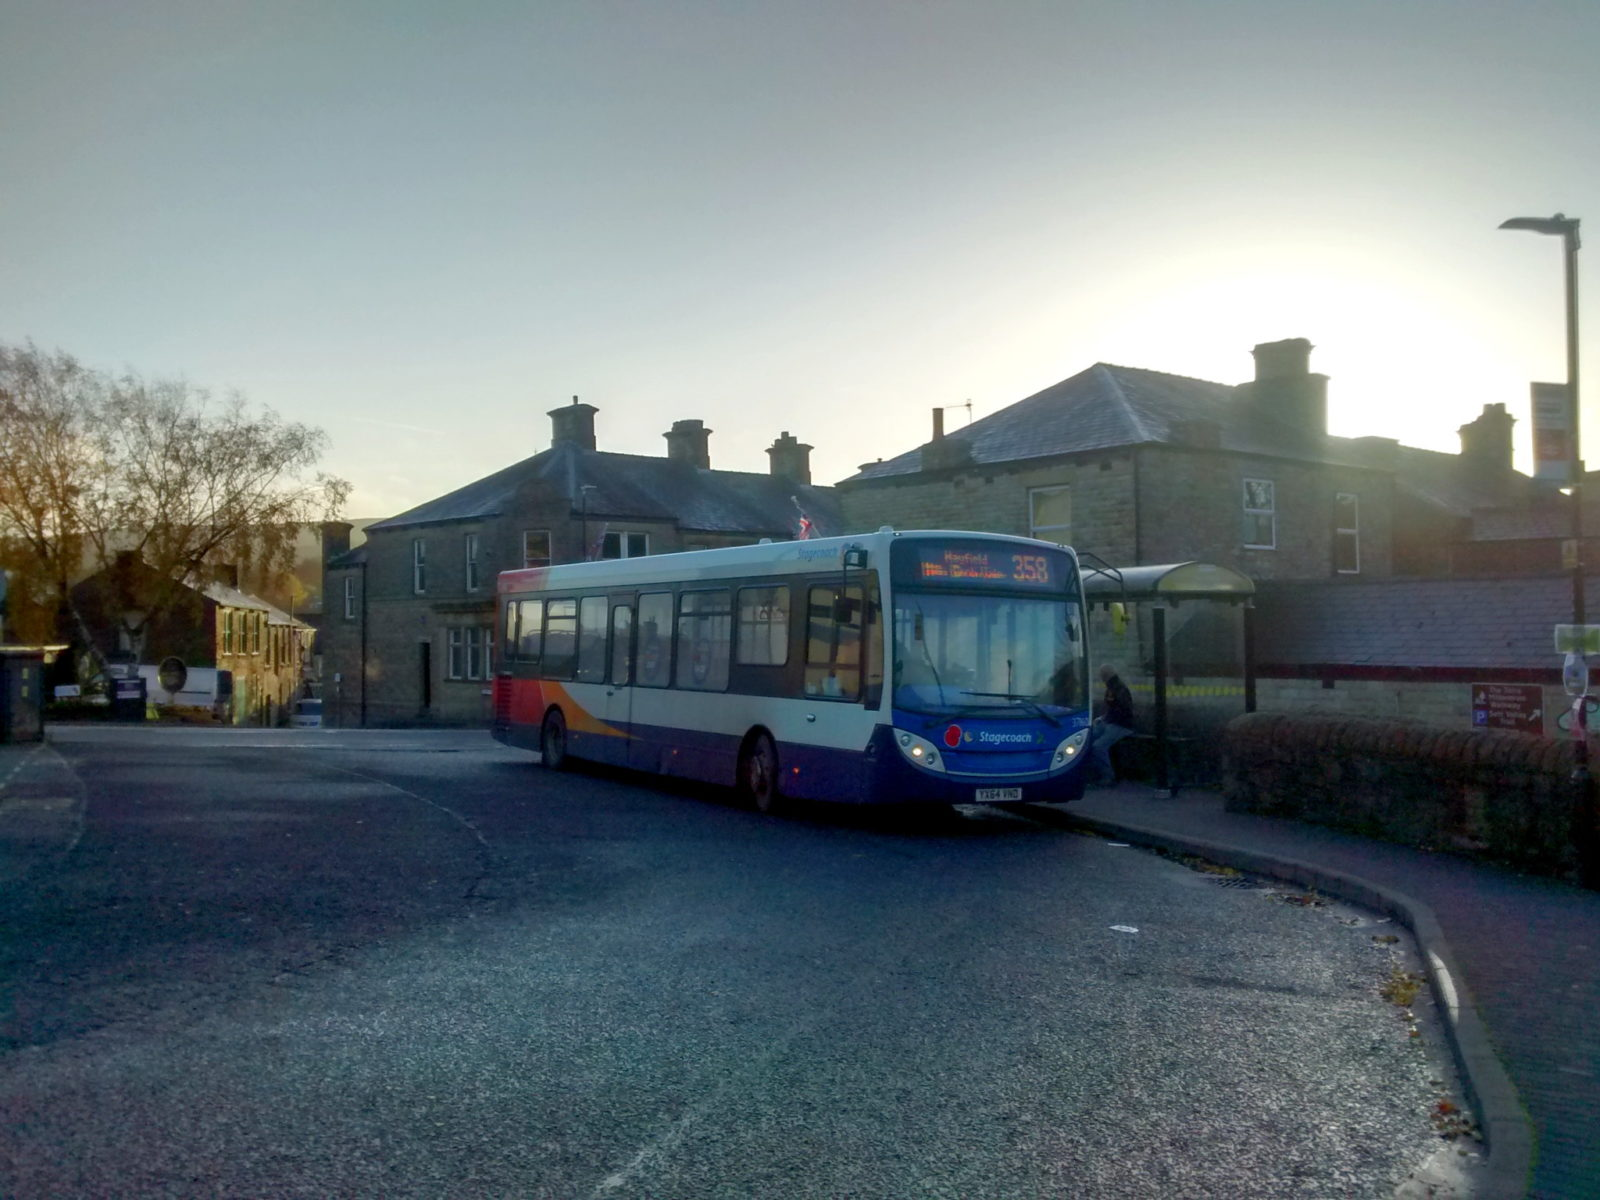 A Stagecoach Manchester bus on the 358 route, stood at New Mills bus station